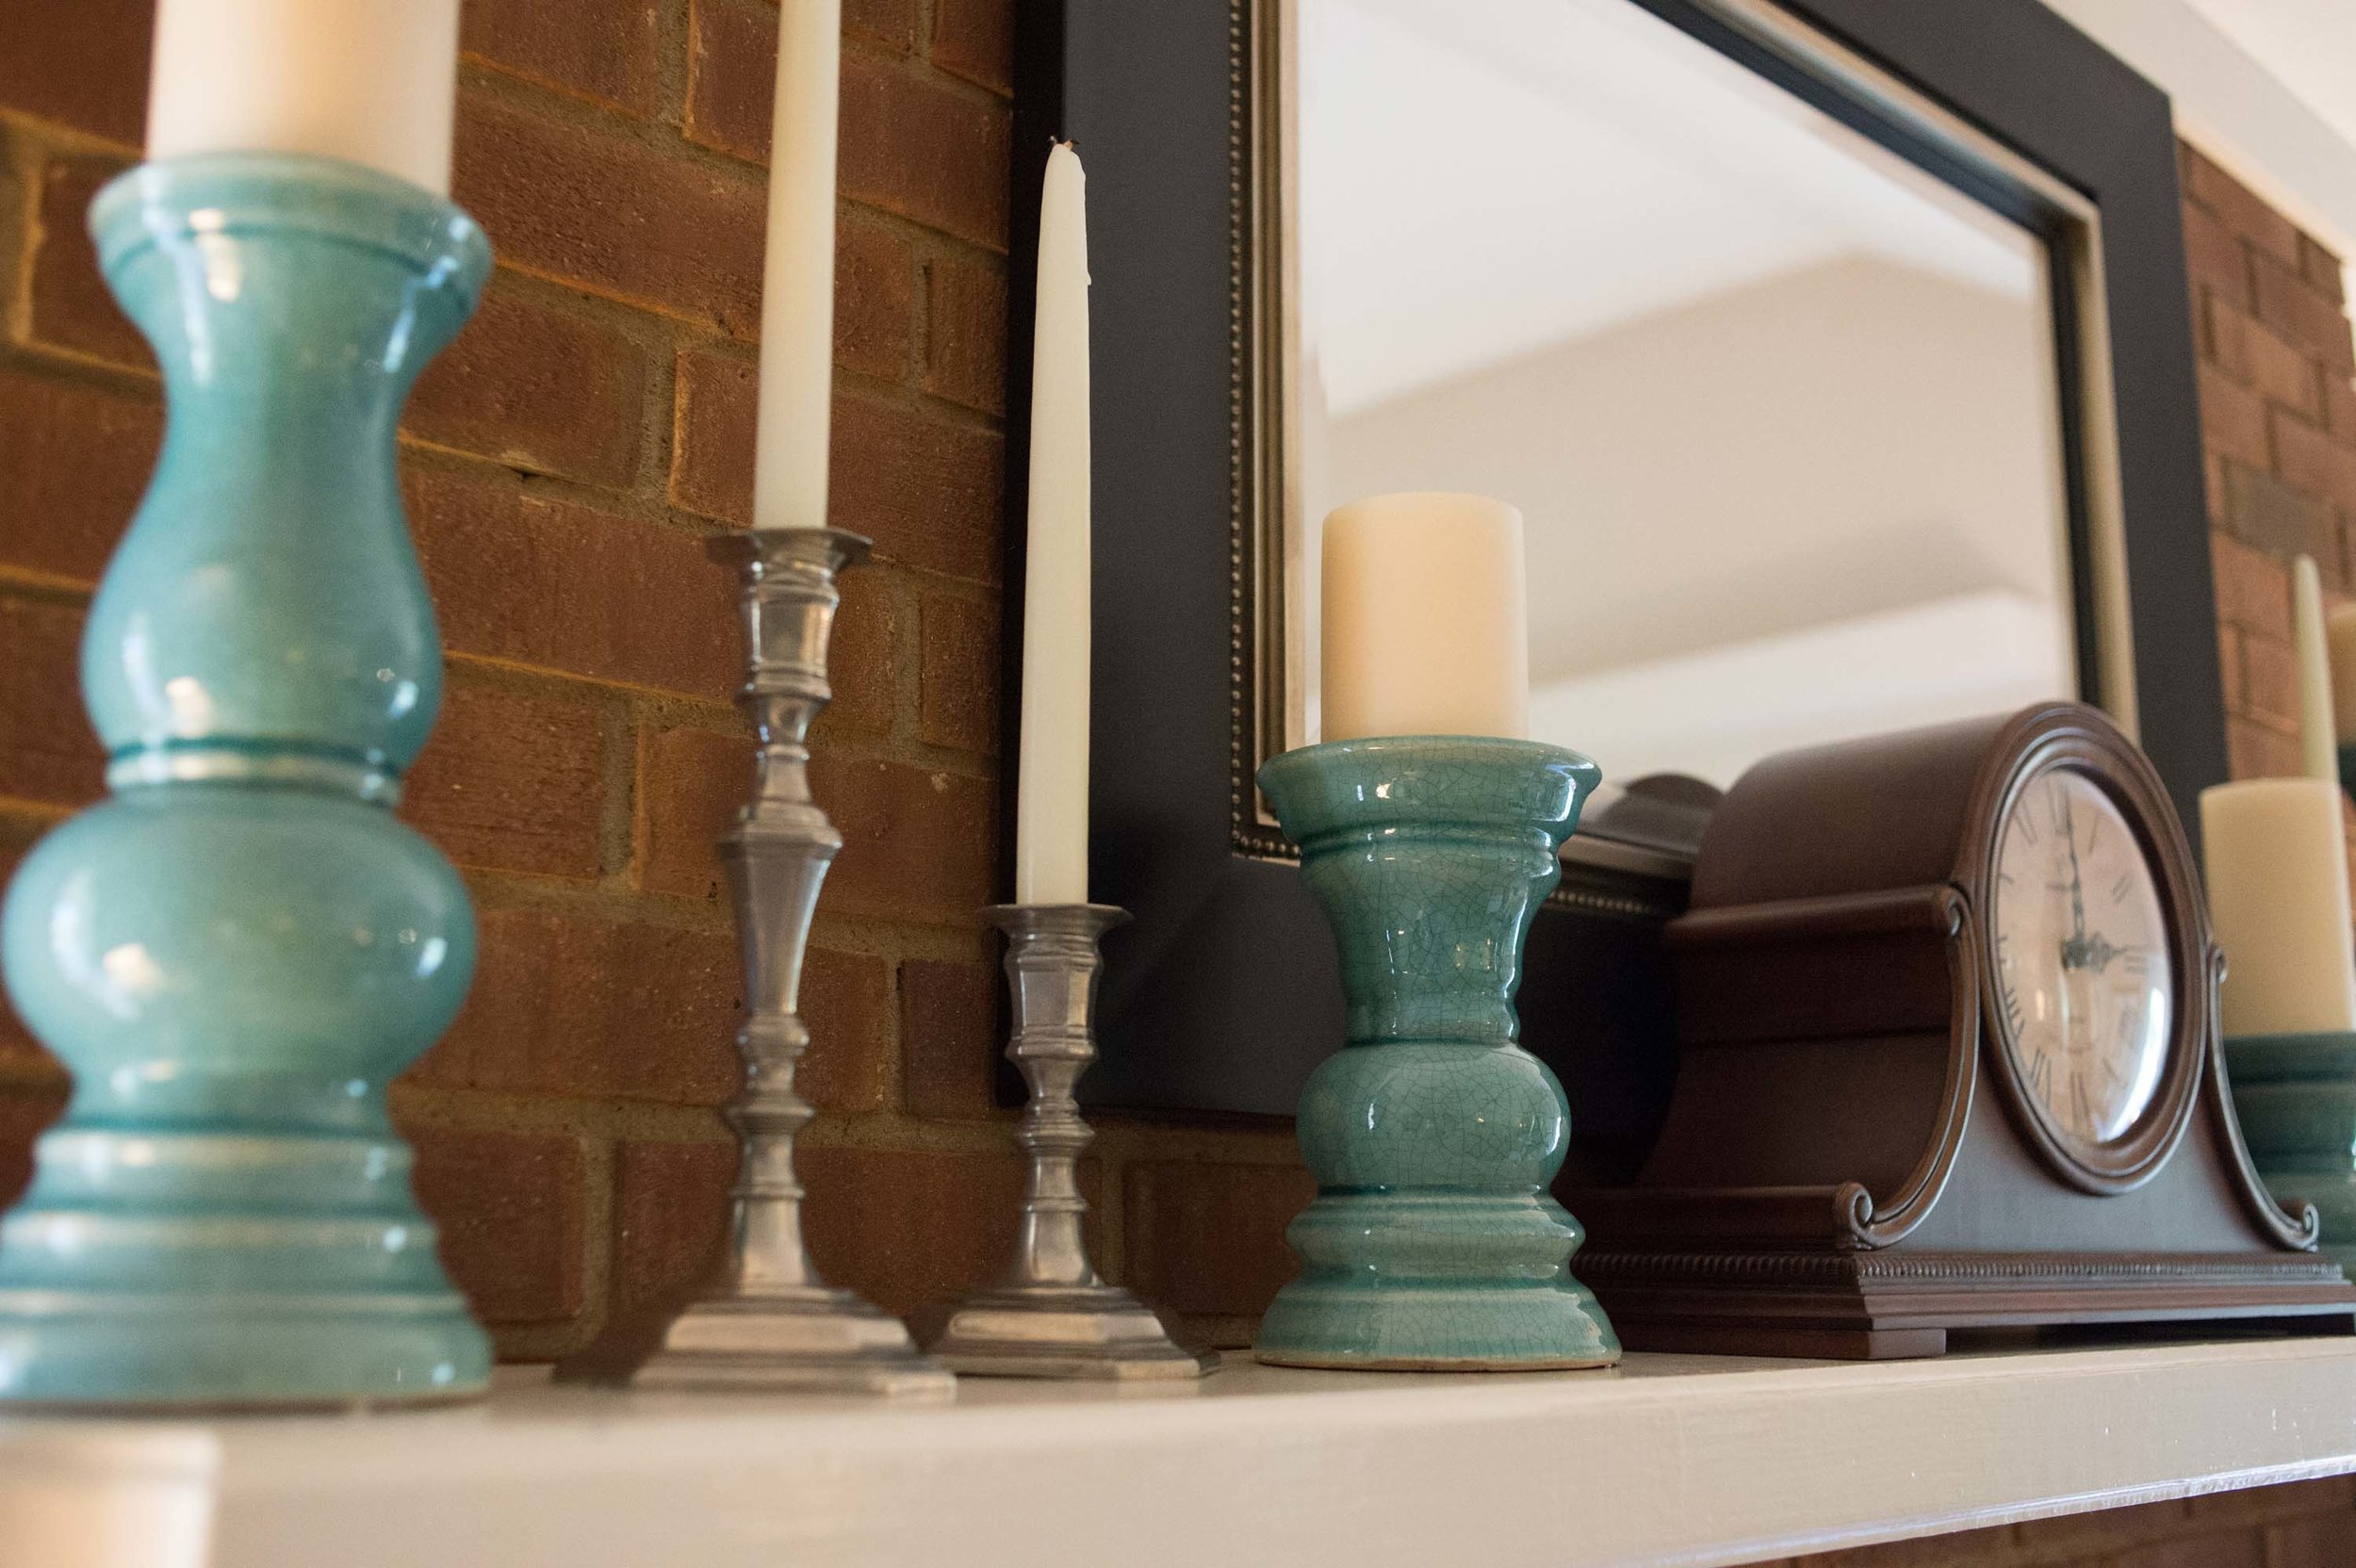 Fireplace Accessories that include Candlesticks and Mirror